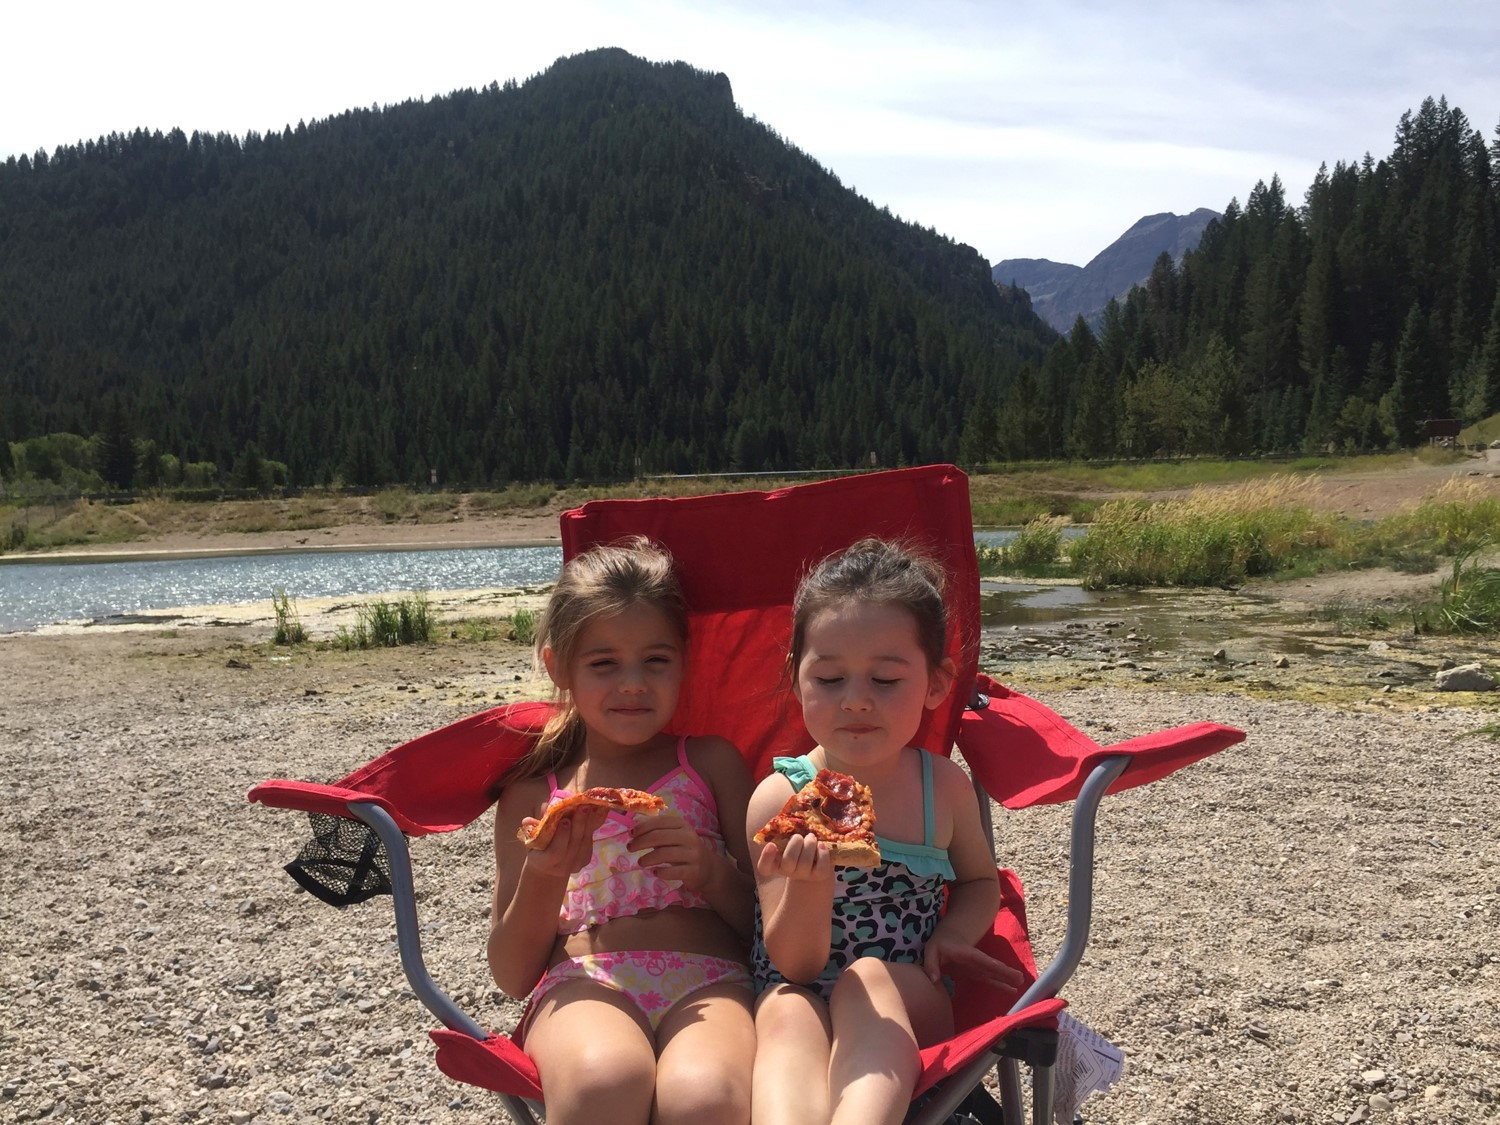 Lolah and Kaylie Palma taking a break from playing by eating pizza at Tibble Fork Lake Uinta National Forest.